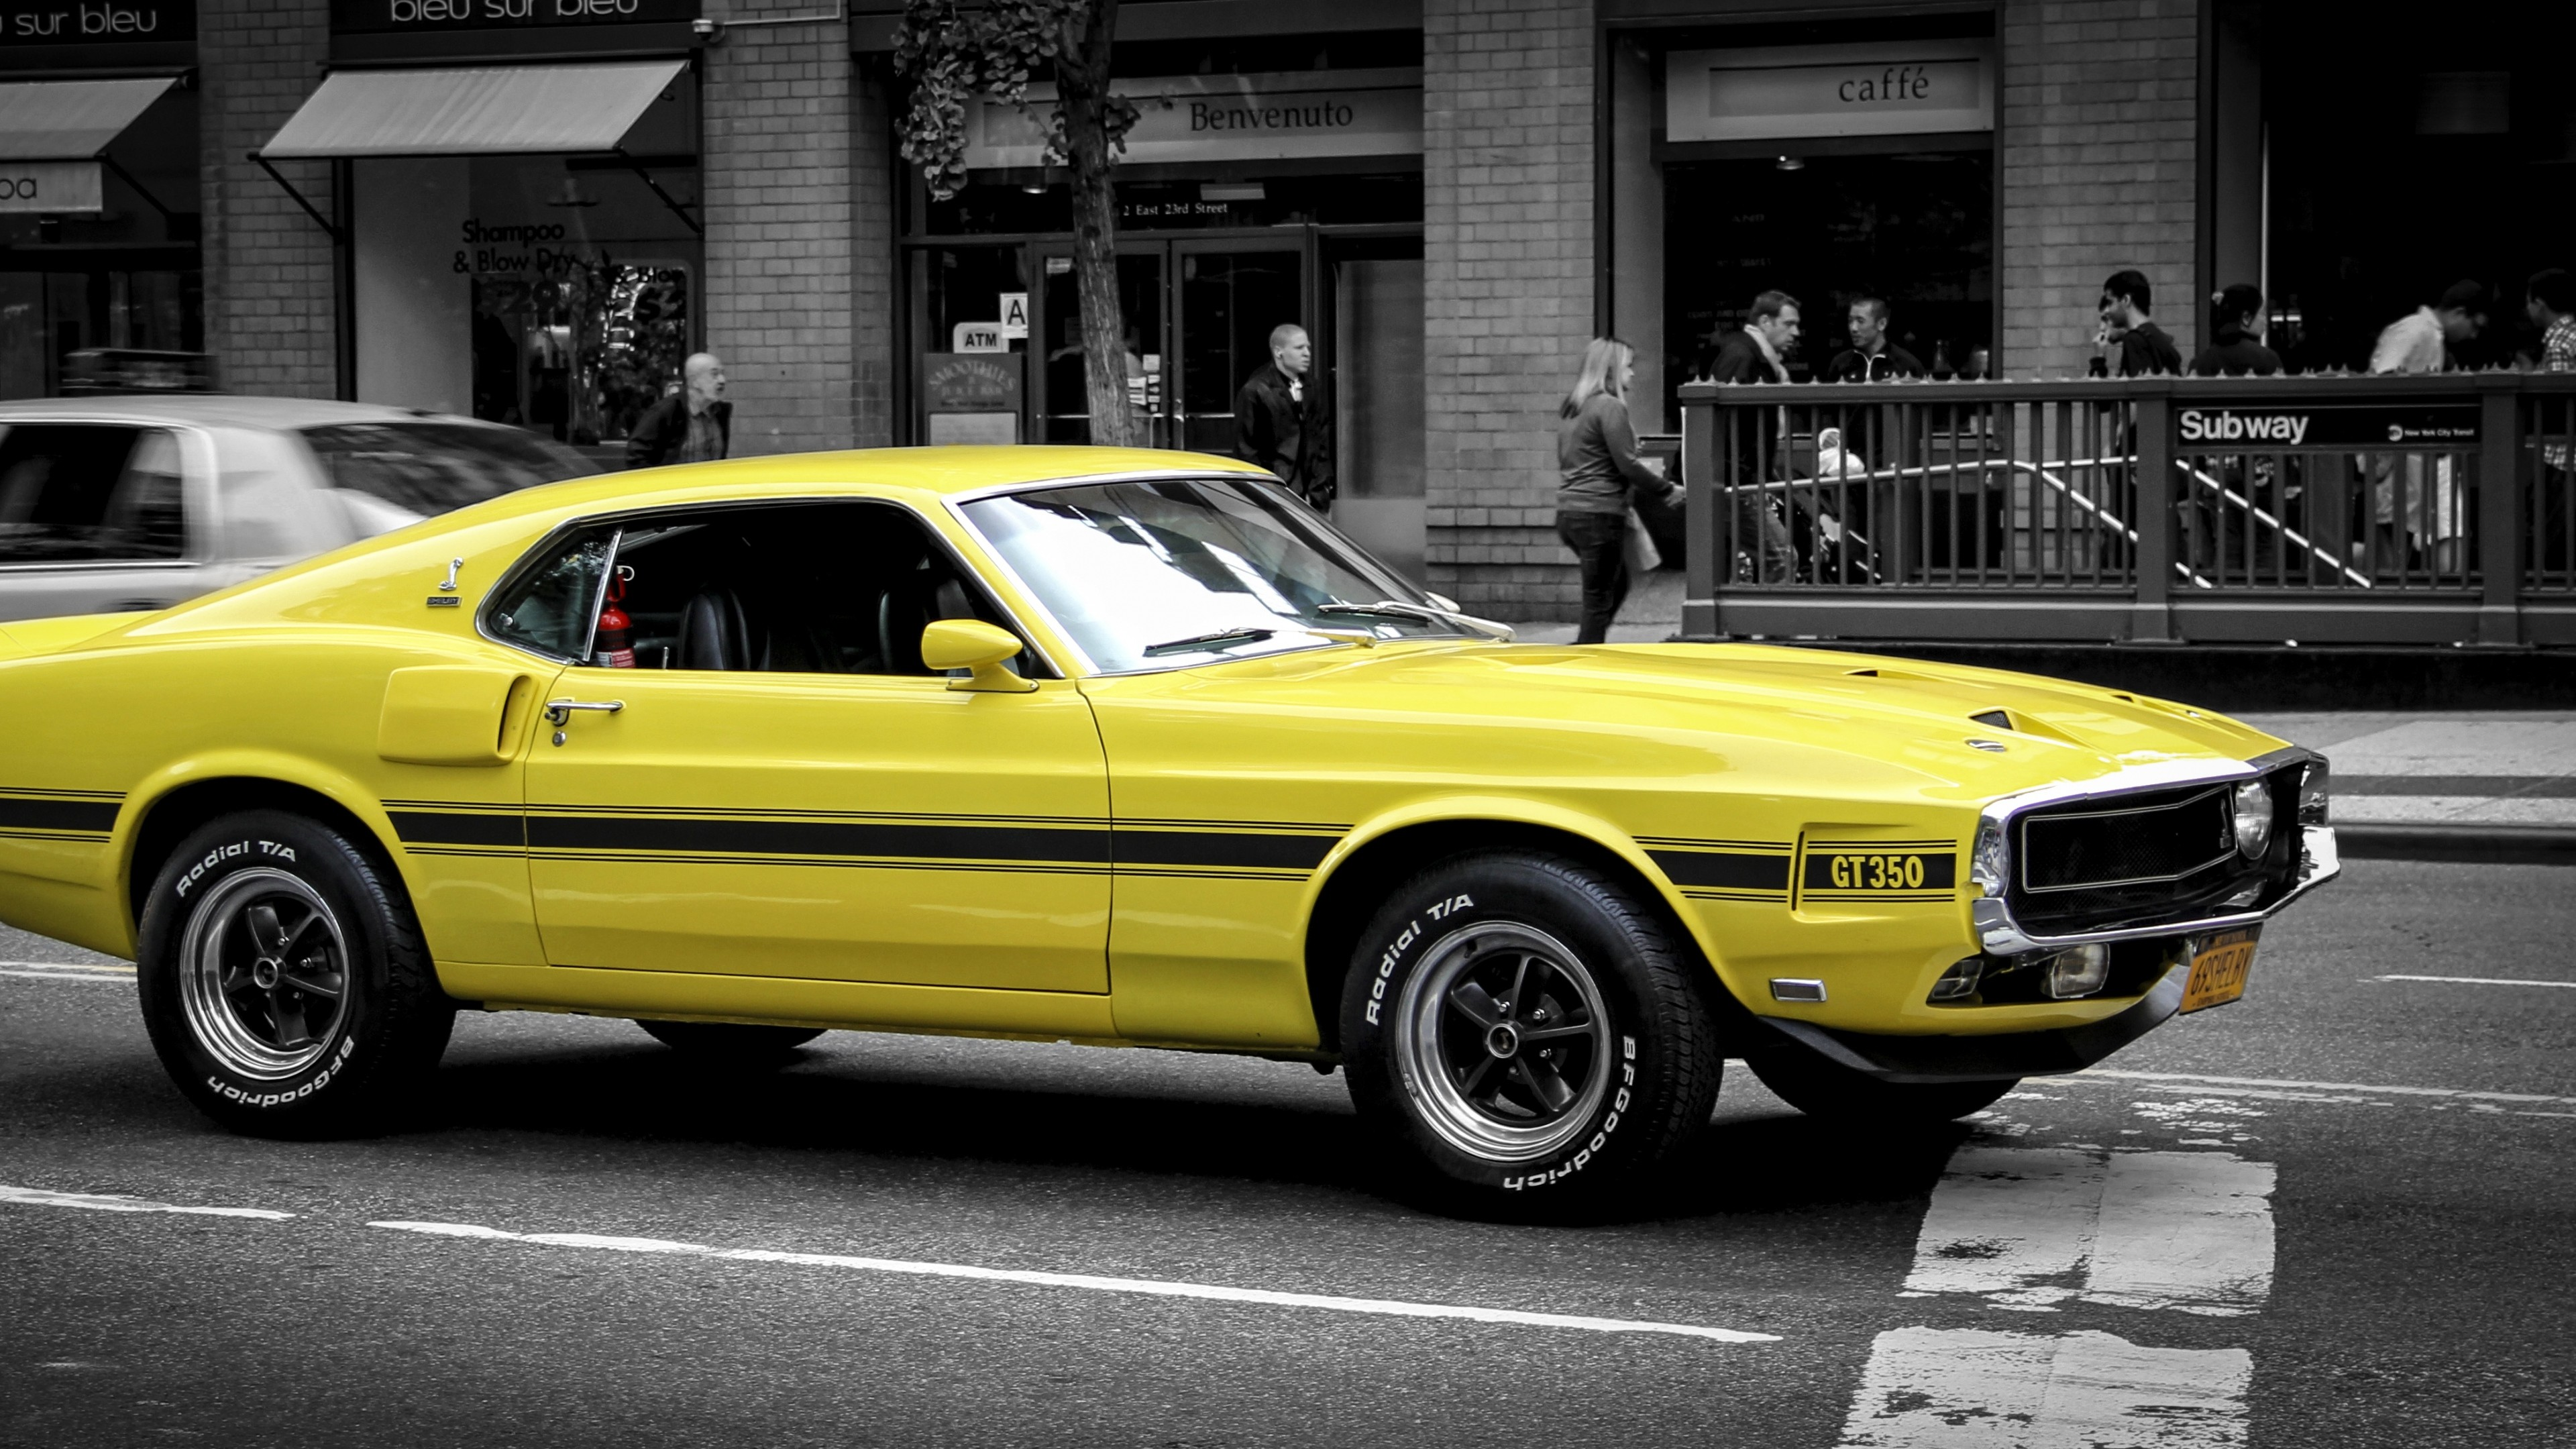 Wallpapers Desktop Cars 67 Background Pictures